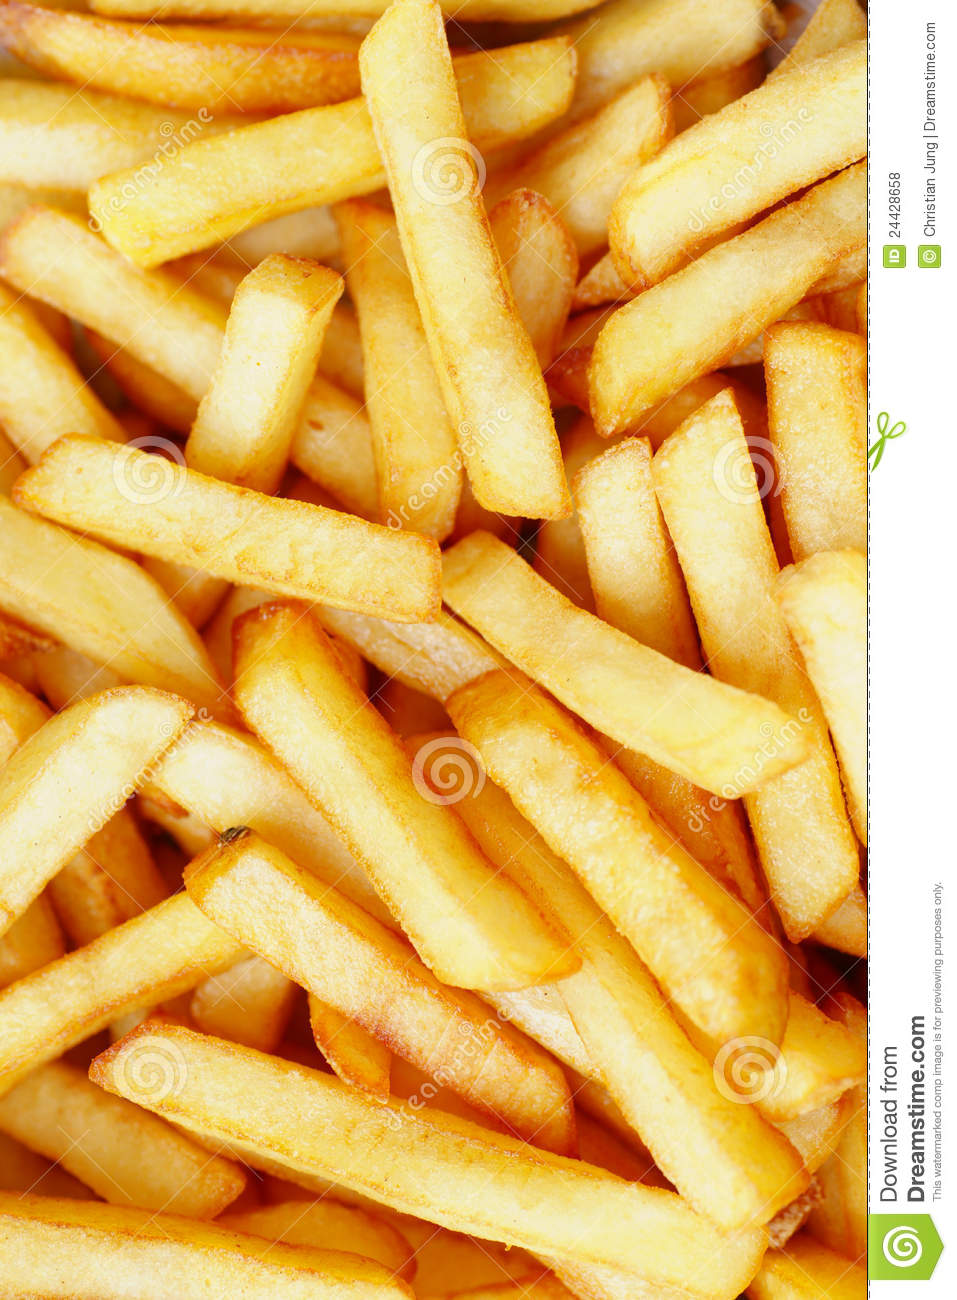 Fish Animation Wallpaper Free Download French Fries Royalty Free Stock Photos Image 24428658